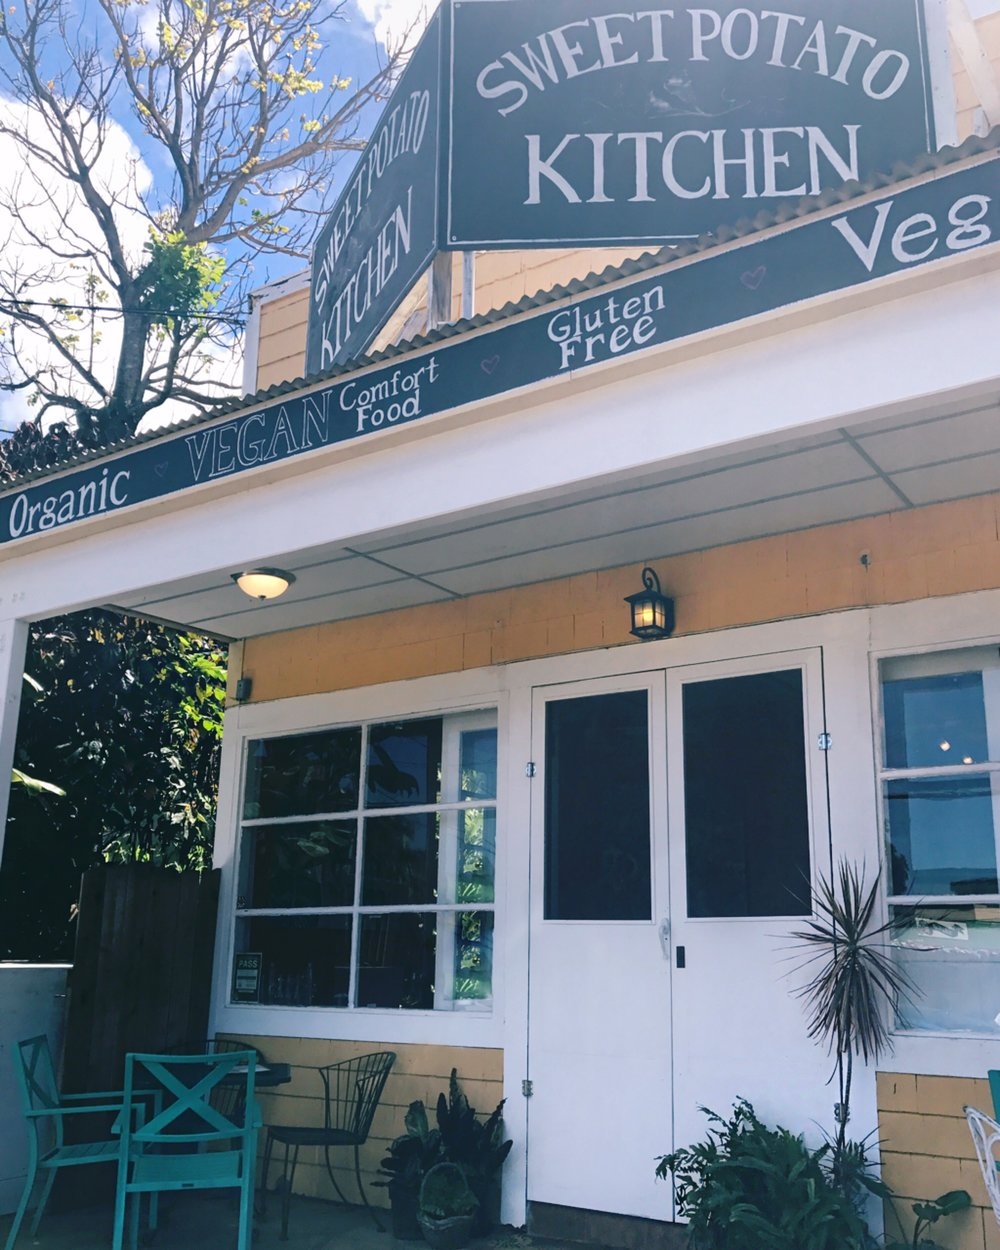 Sweet Potato Kitchen was our go-to spot in Hawi for organic bites